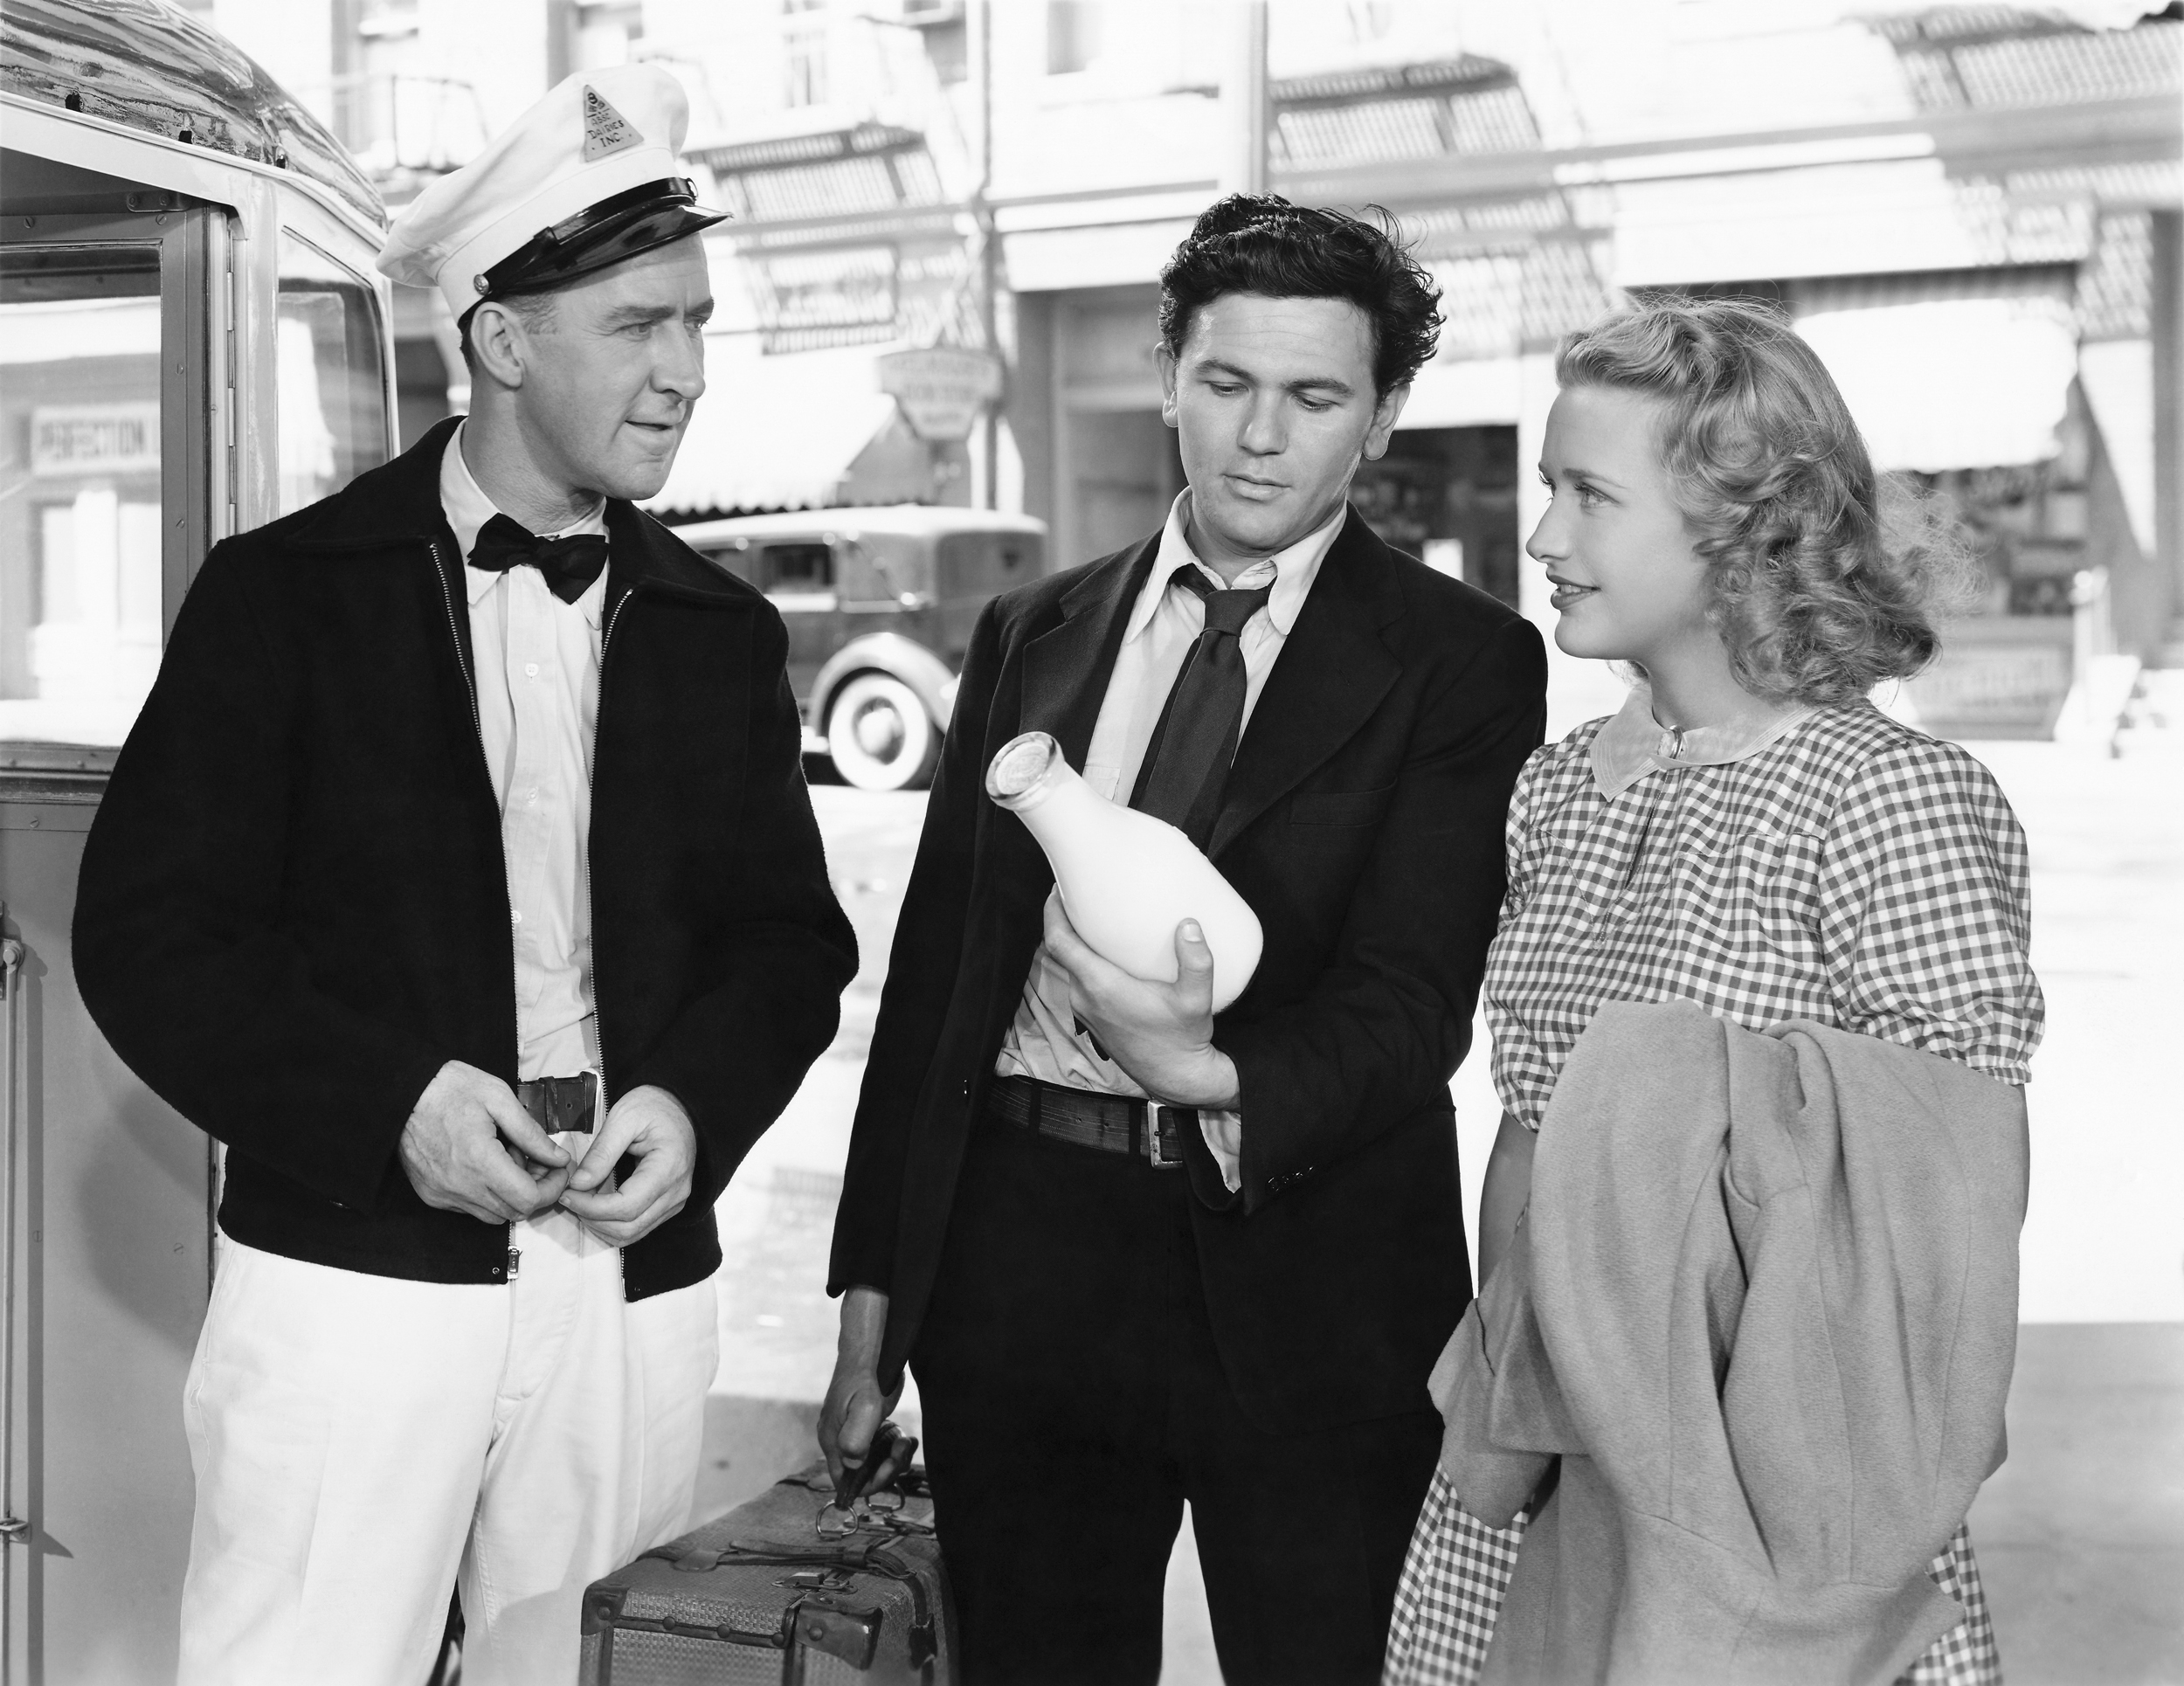 John Garfield...(L to R) Garry Owen, John Garfield, Priscilla Lane (sepia and XL versions) Courtesy of Sarah and Michelle